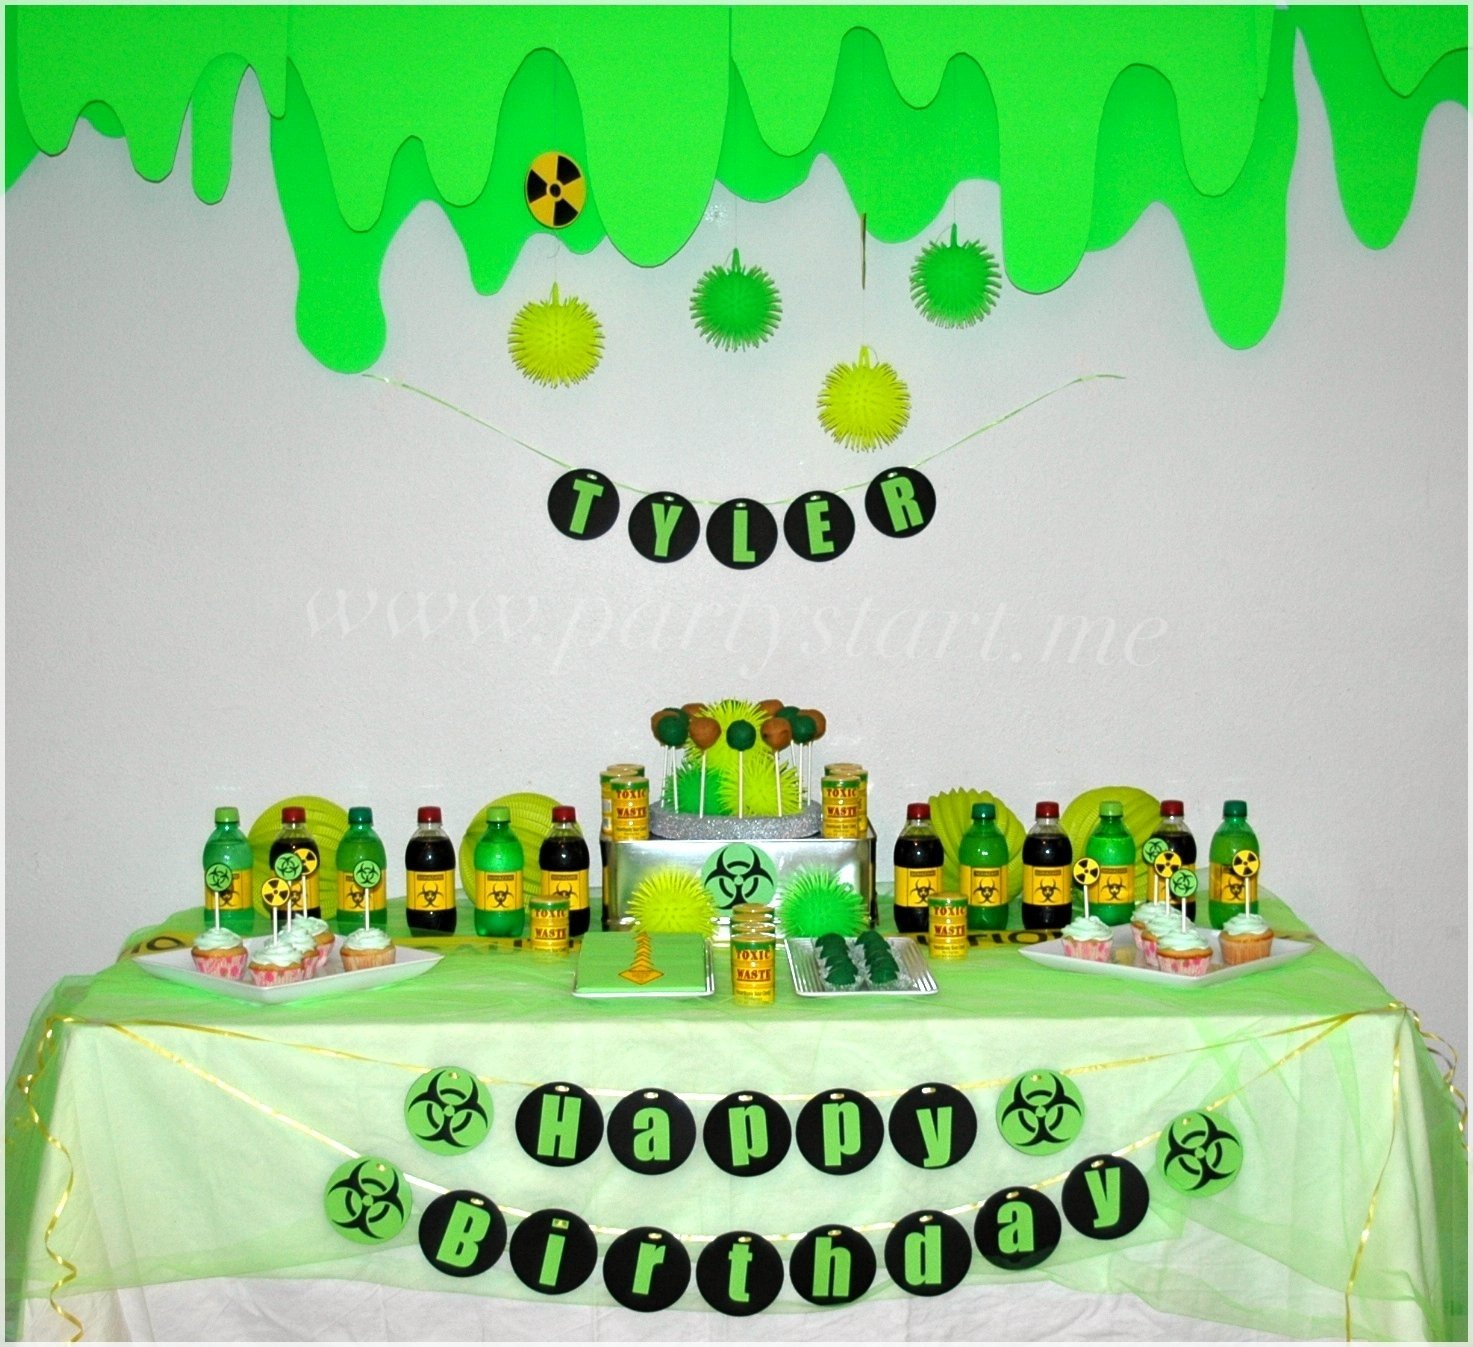 10 Lovable Birthday Ideas For 6 Year Old Boy 3 Party Elegant